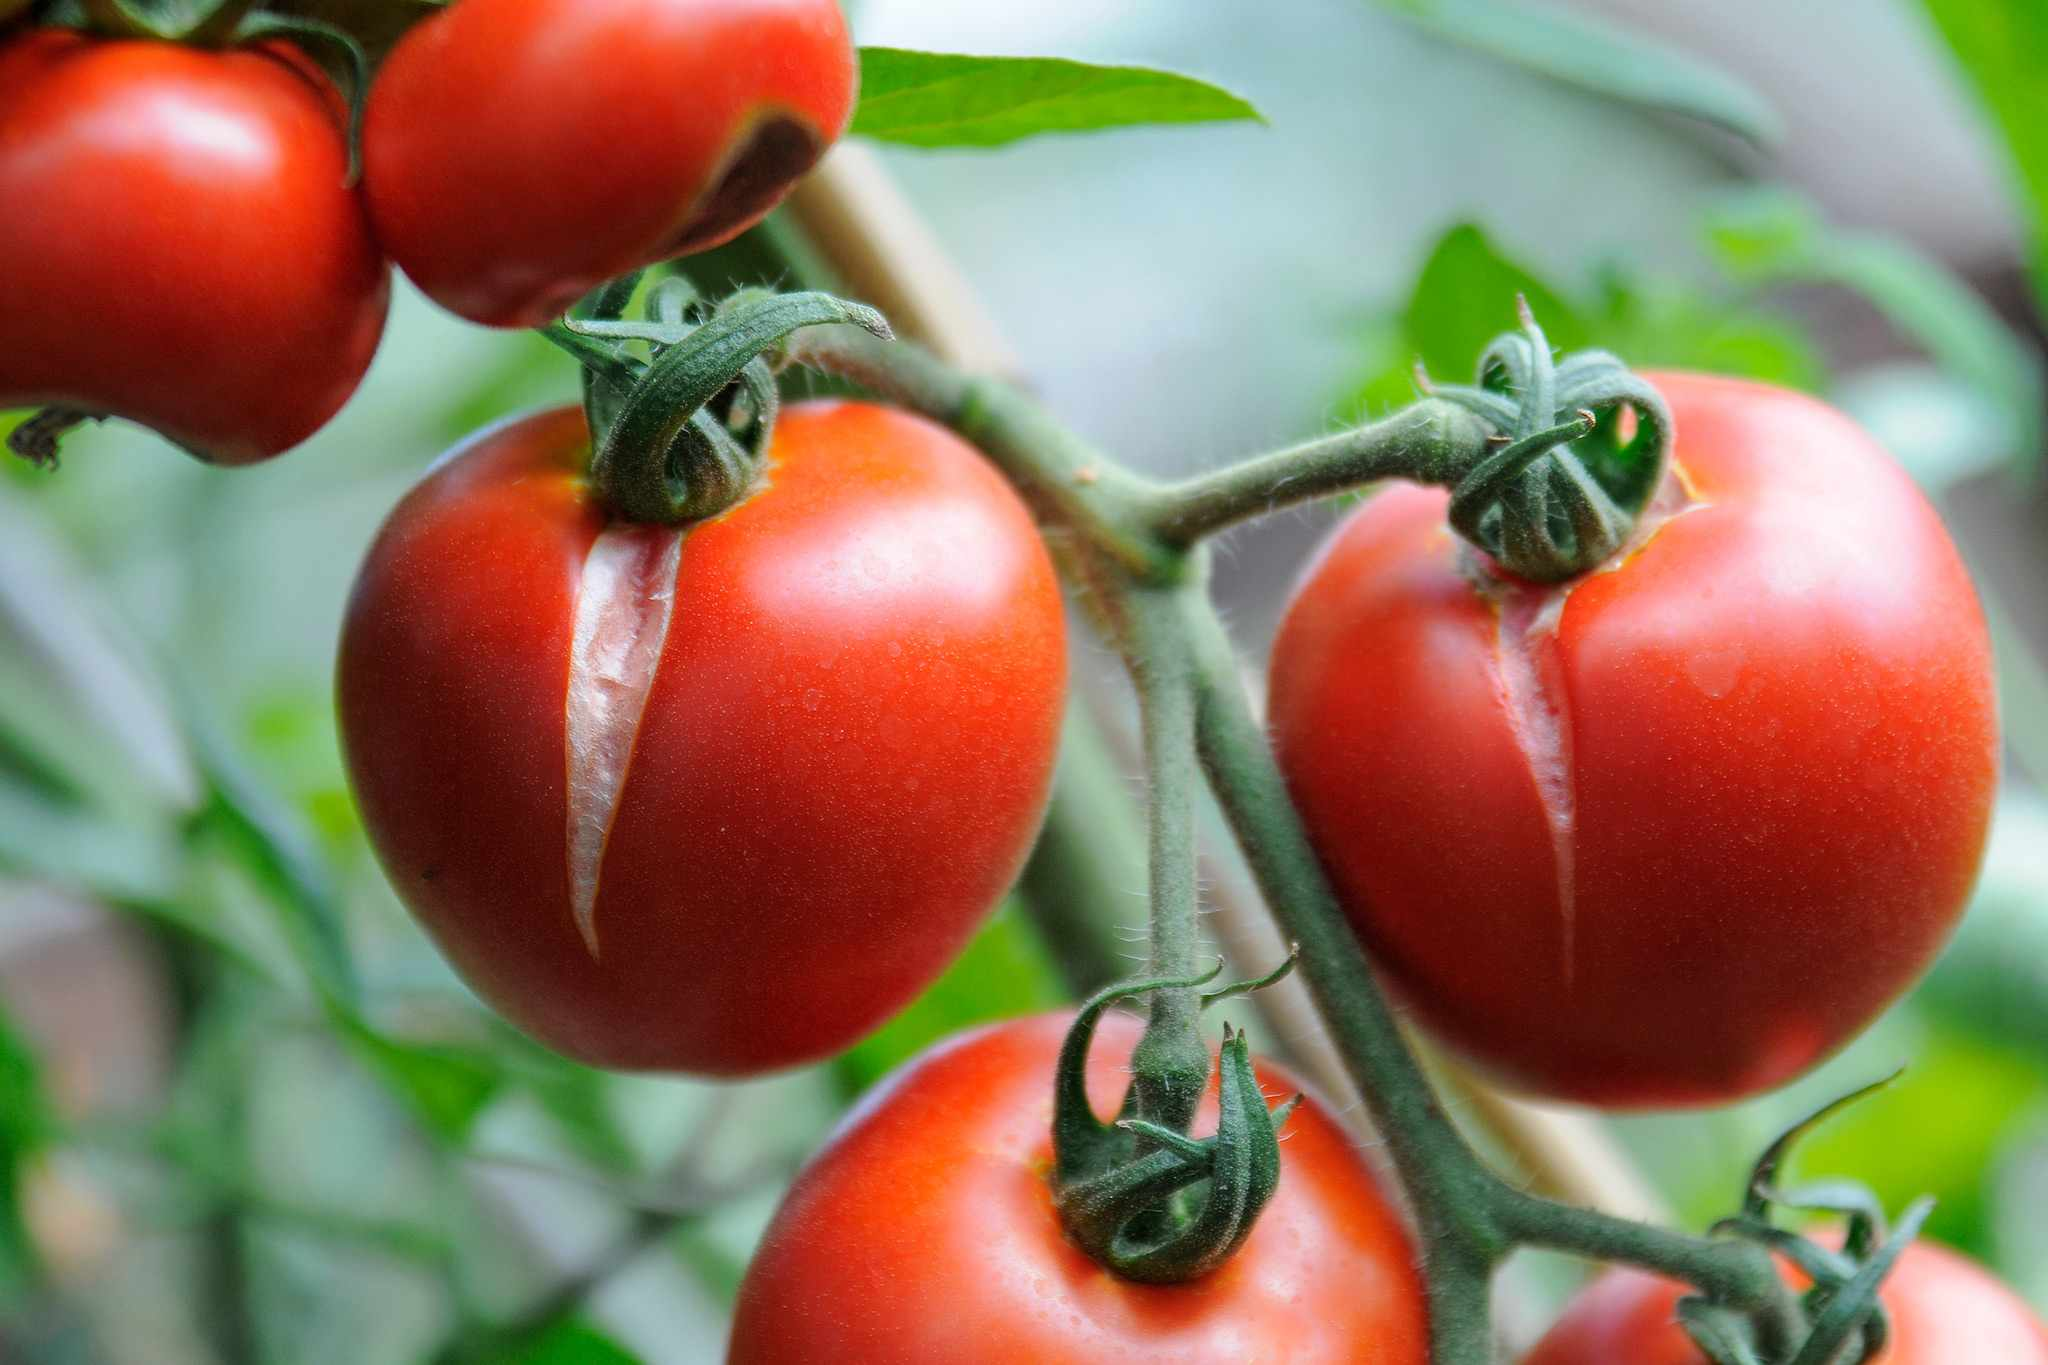 Tomatoes that have split whilst ripening on the vine